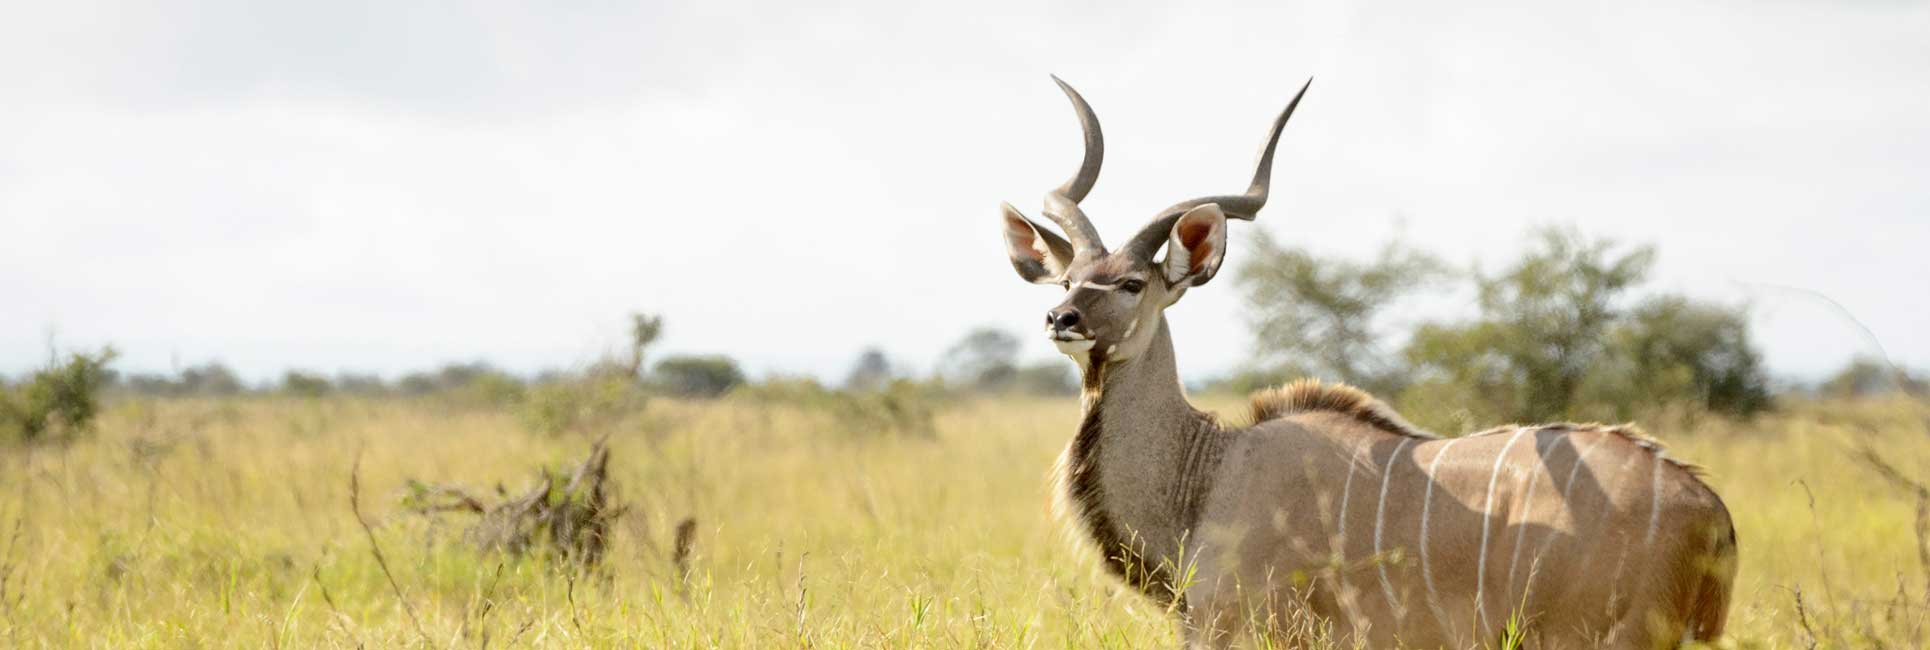 A male Kudu standing proudly in a field of yellow grass